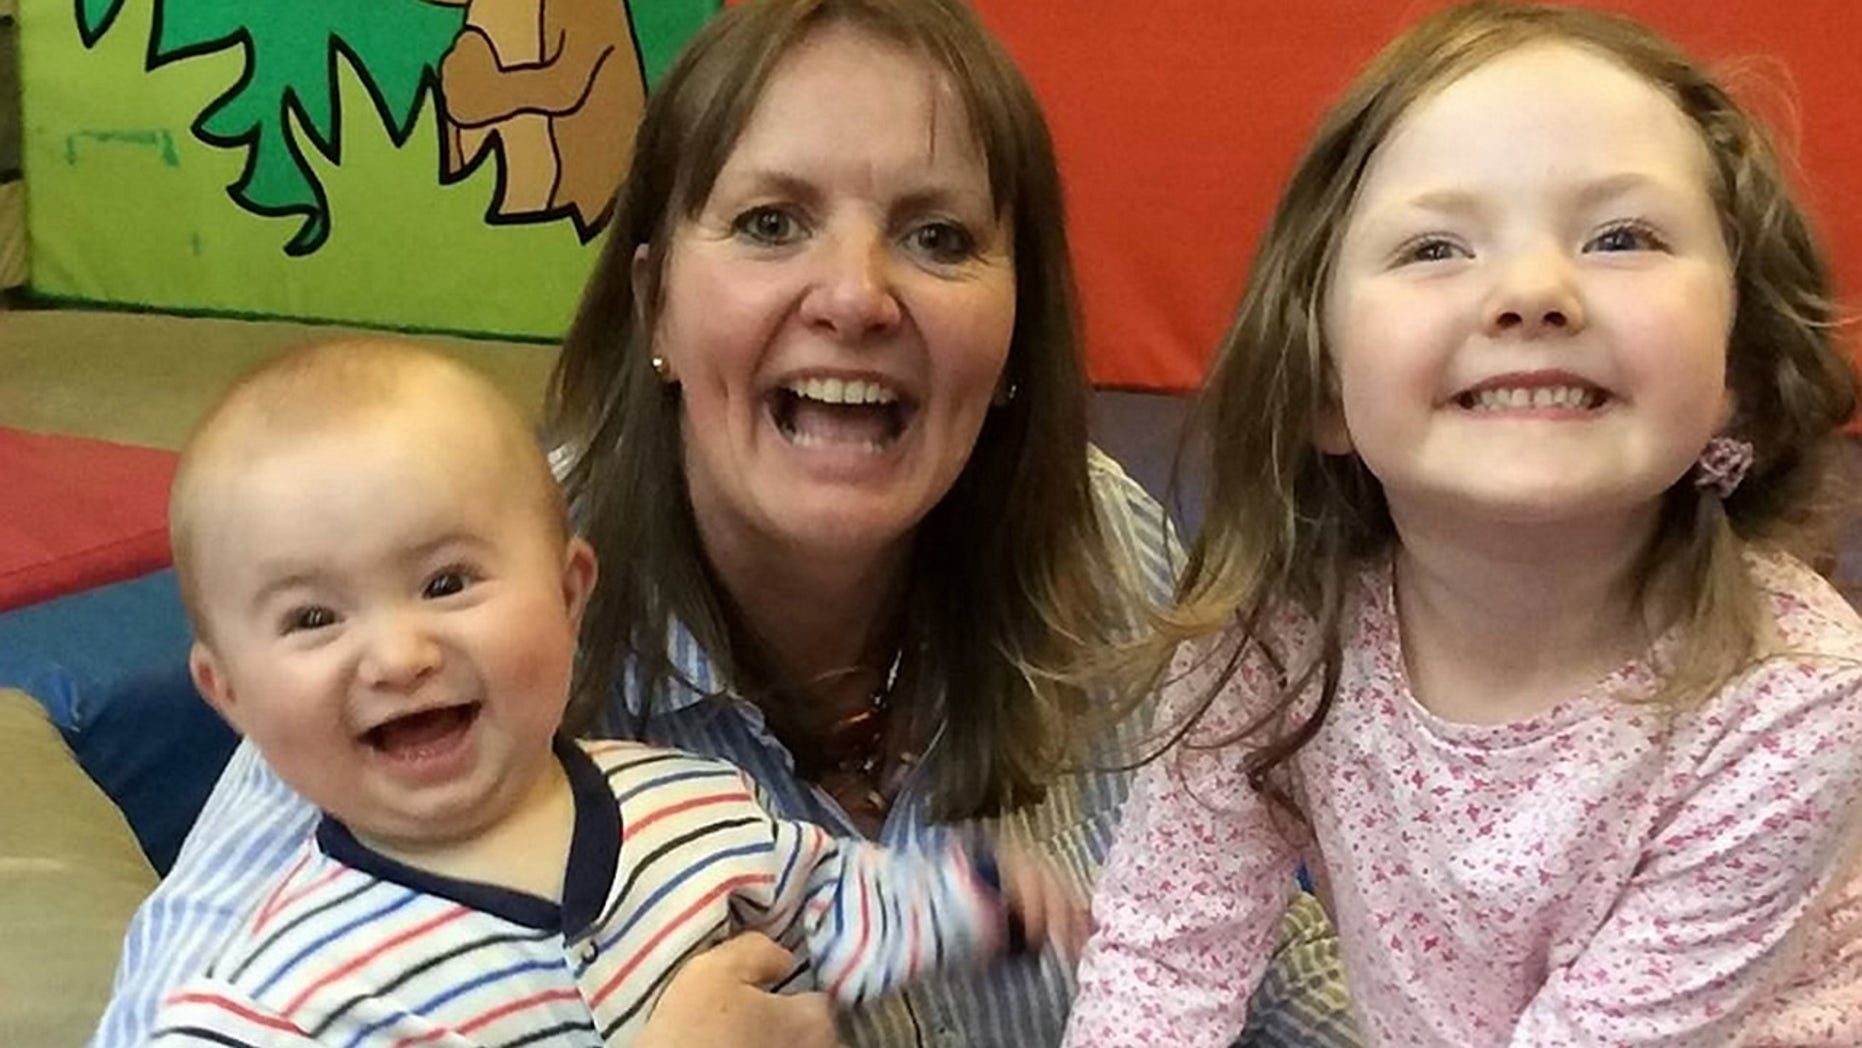 Samantha McConnell, 46, has been told to say goodbye to her young children after being diagnosed with two different cancers.